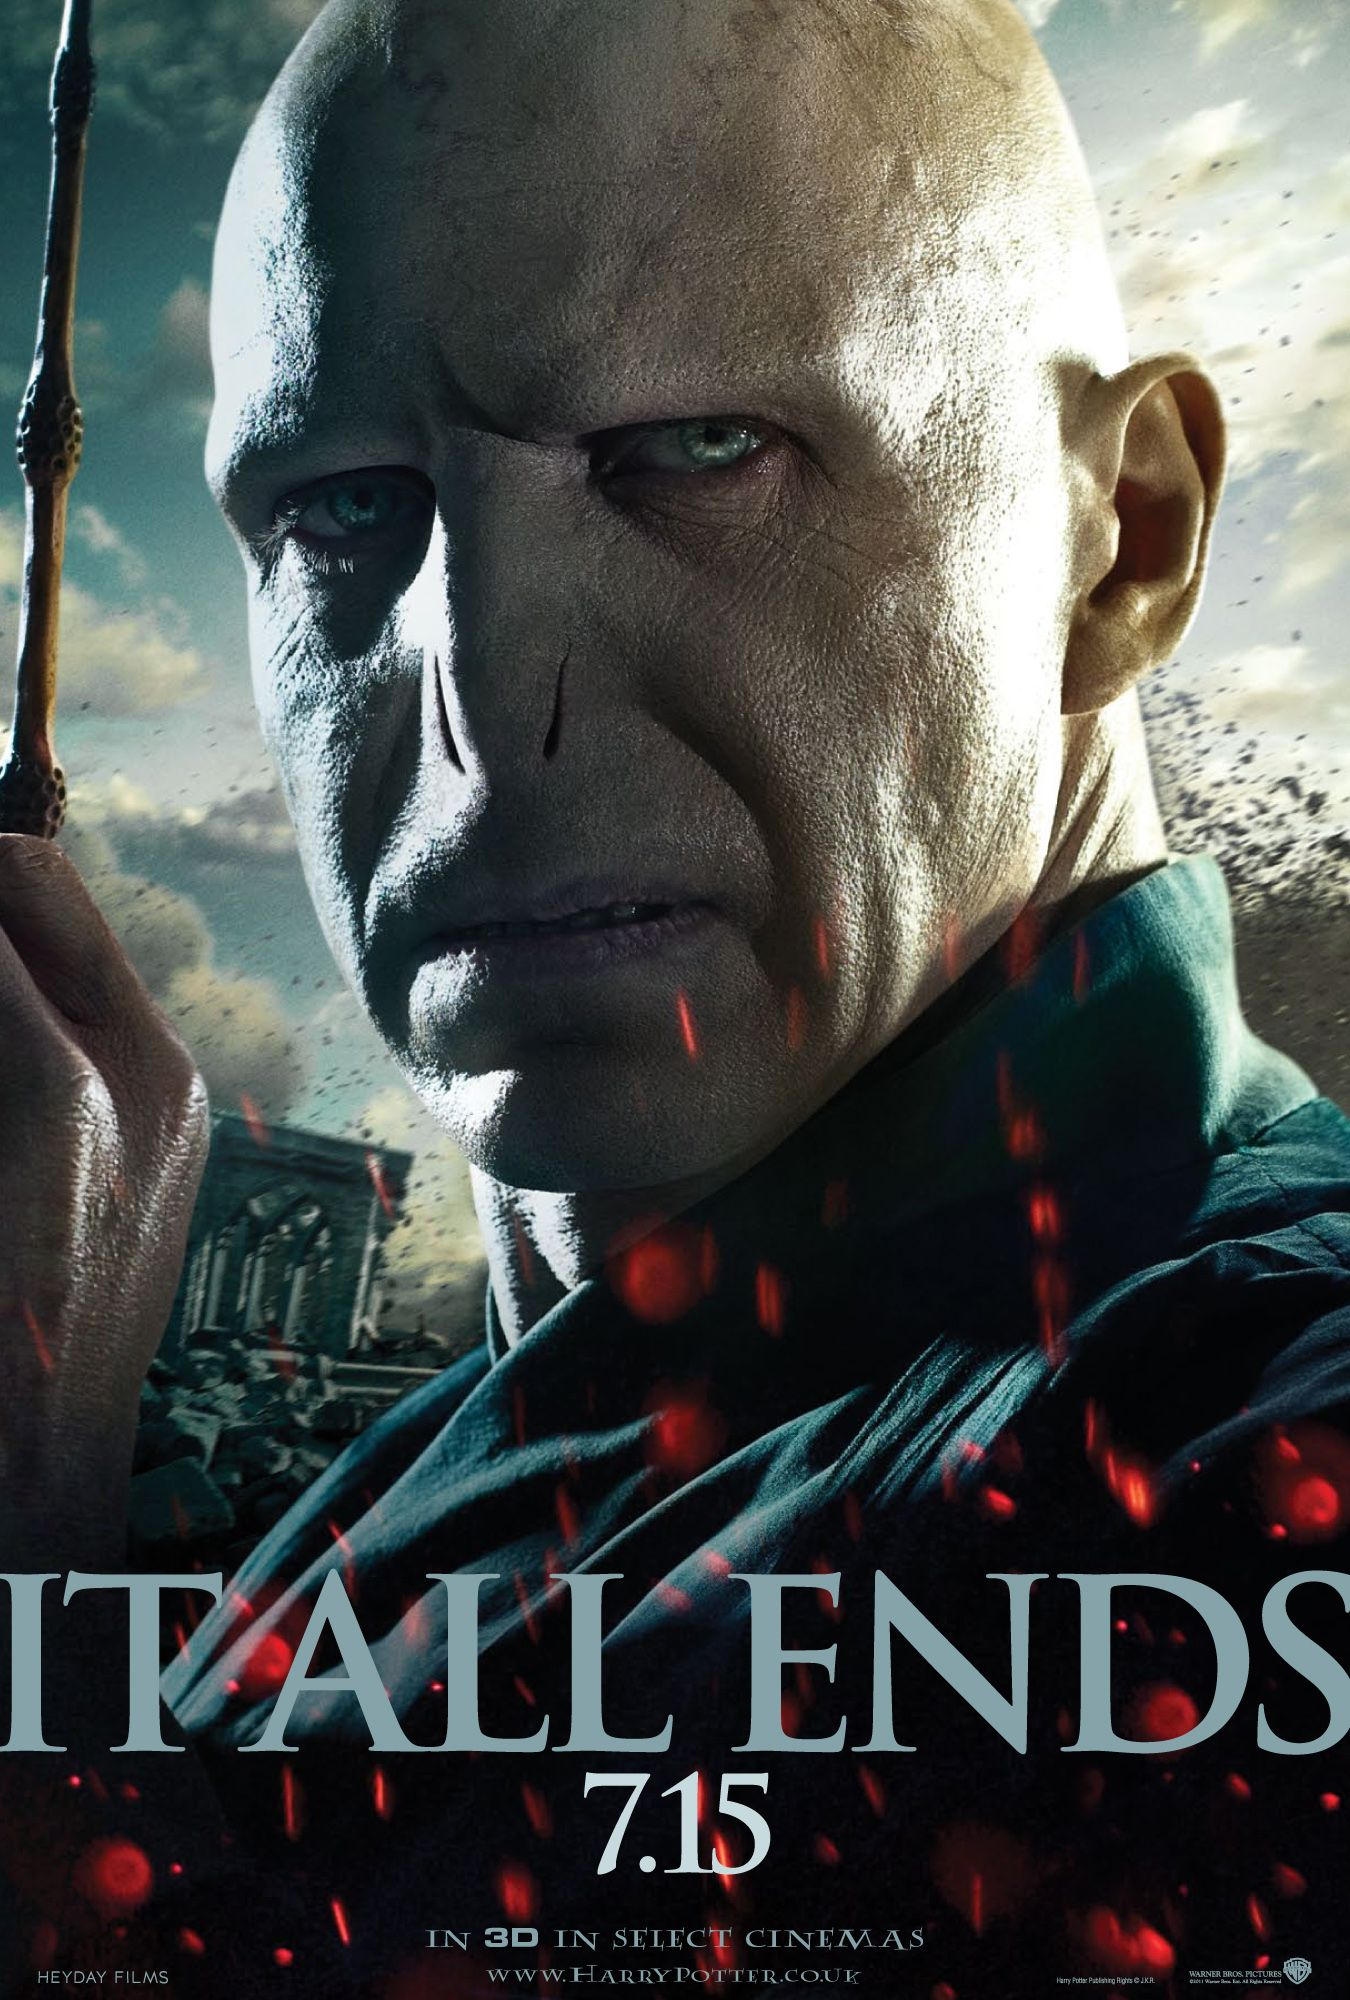 Harry Potter And The Deathly Hallows Part 2 Character Poster Voldemort Harry Potter Poster Voldemort Deathly Hallows Part 2